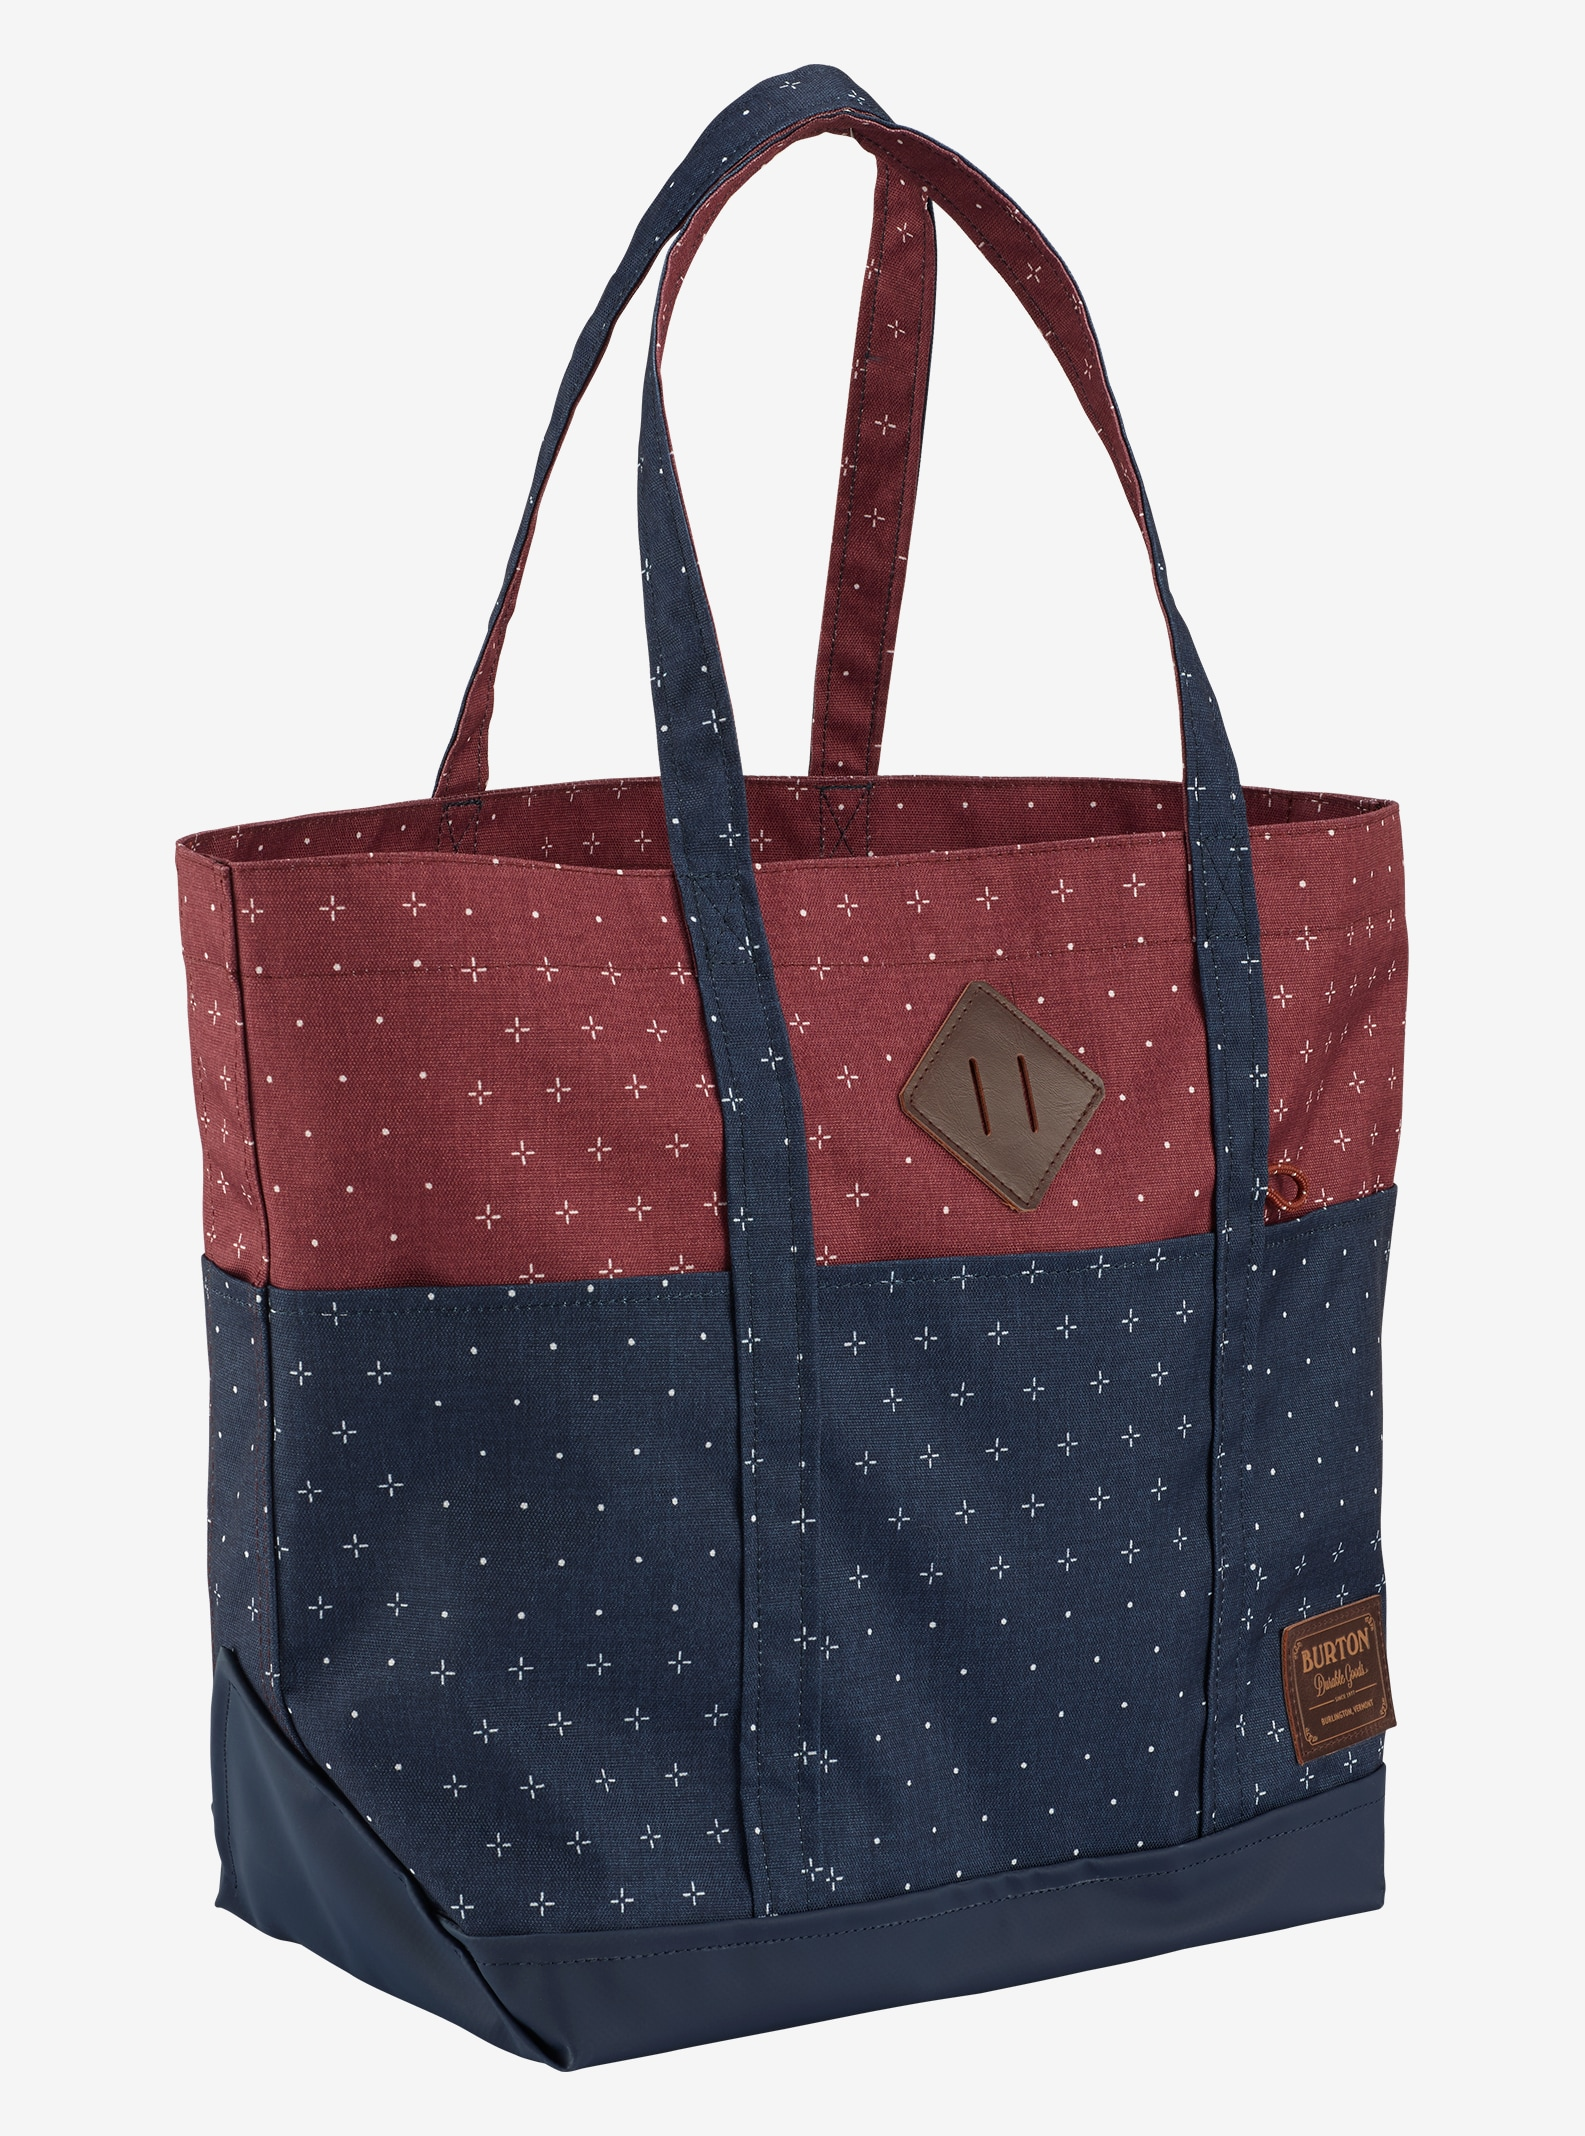 Burton Crate Tote Bag - Medium shown in Mandana Print